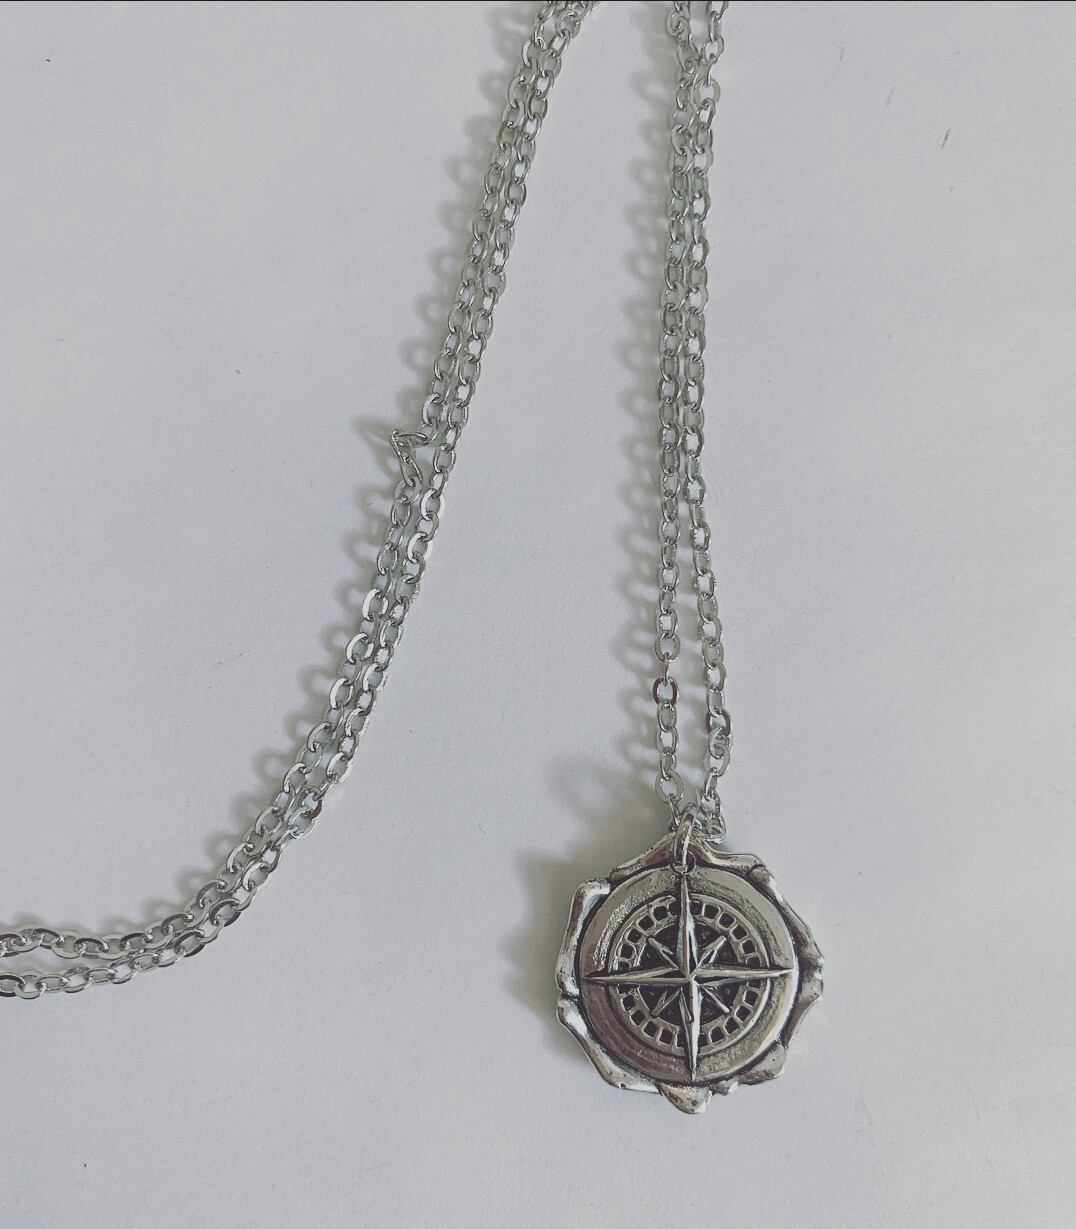 Long compass necklace